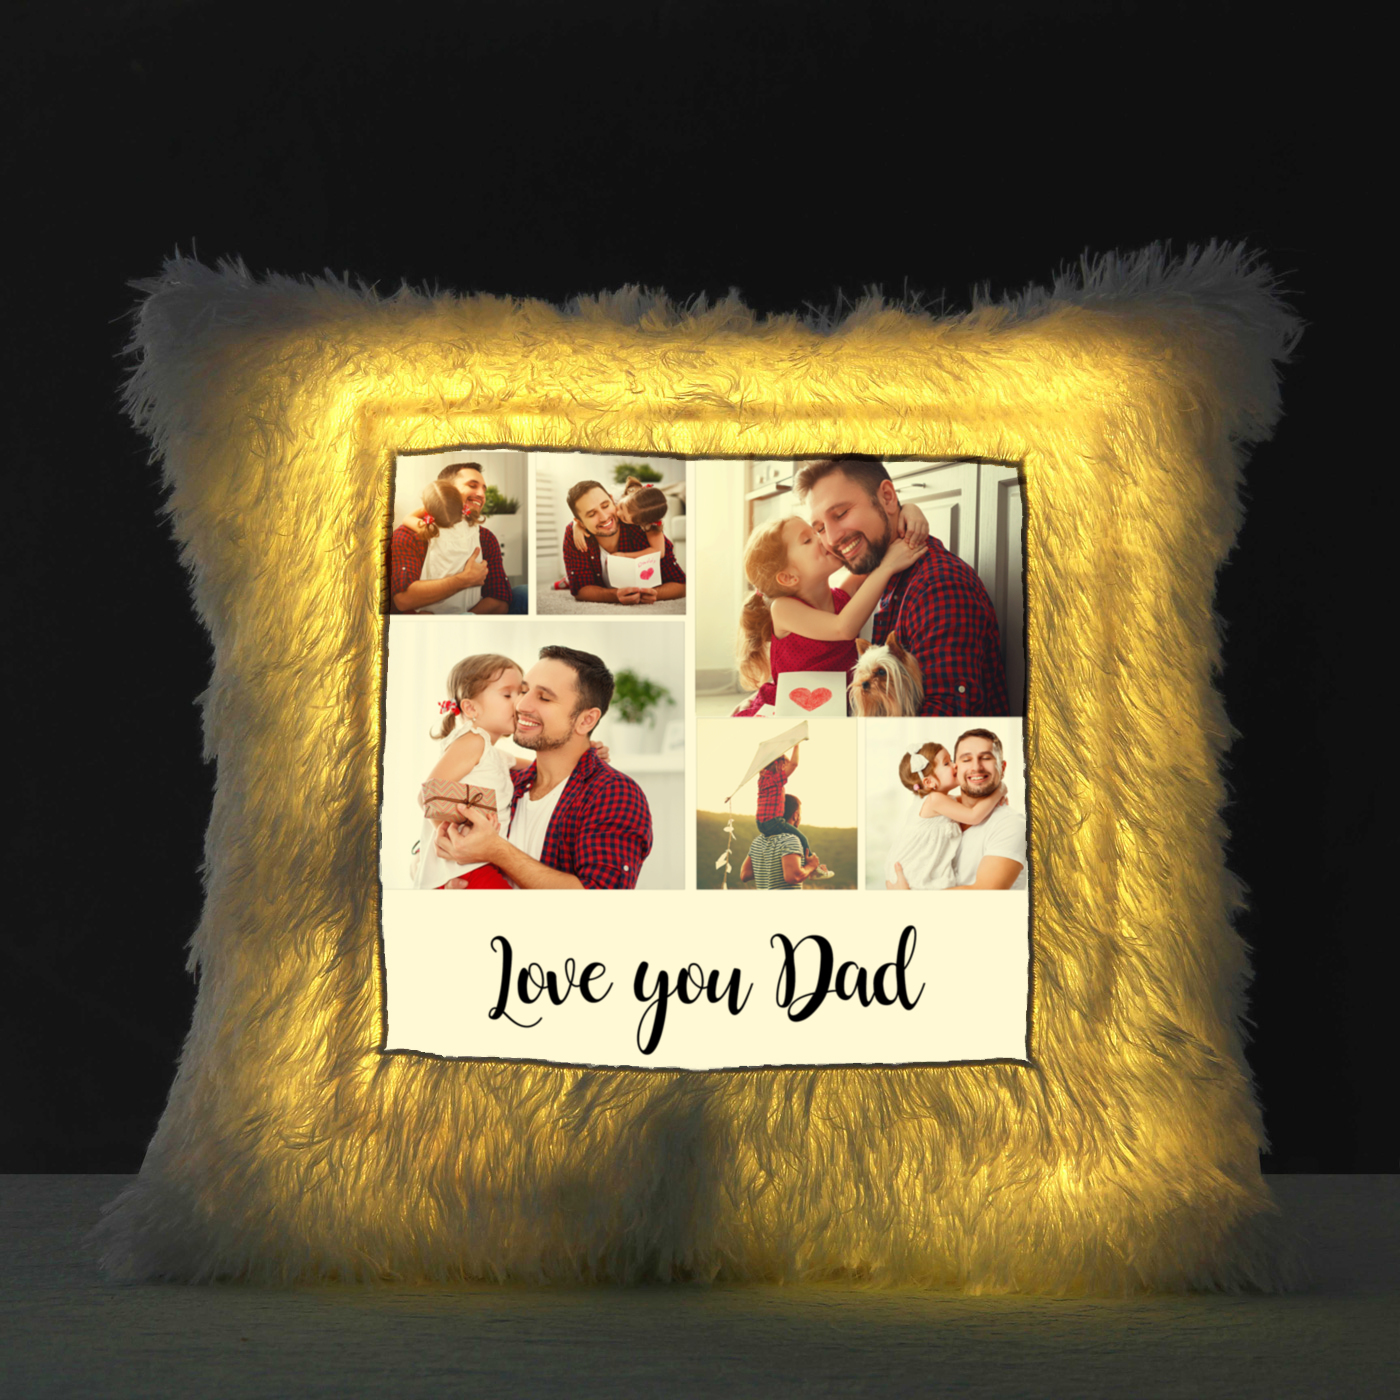 p-personalized-led-cushion-for-daddy-dearest-95090-IGP